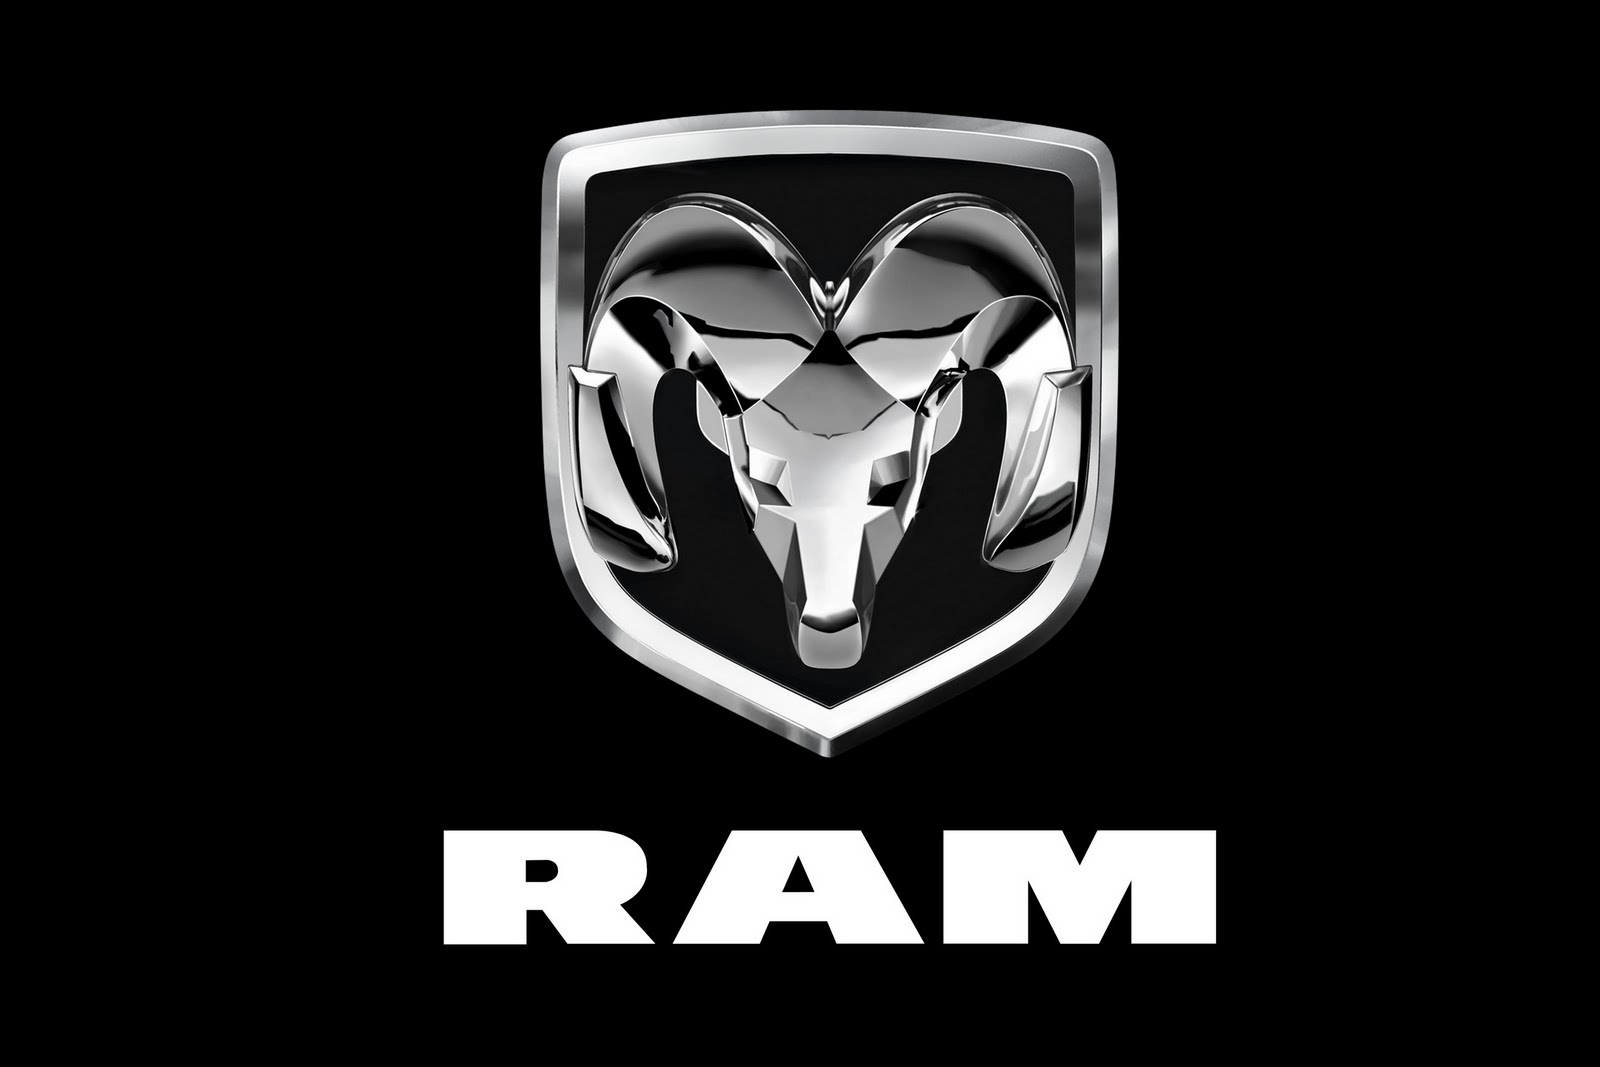 Dodge Ram Logo Wallpaper 5152 Hd Wallpapers in Logos   Imagescicom 1600x1067